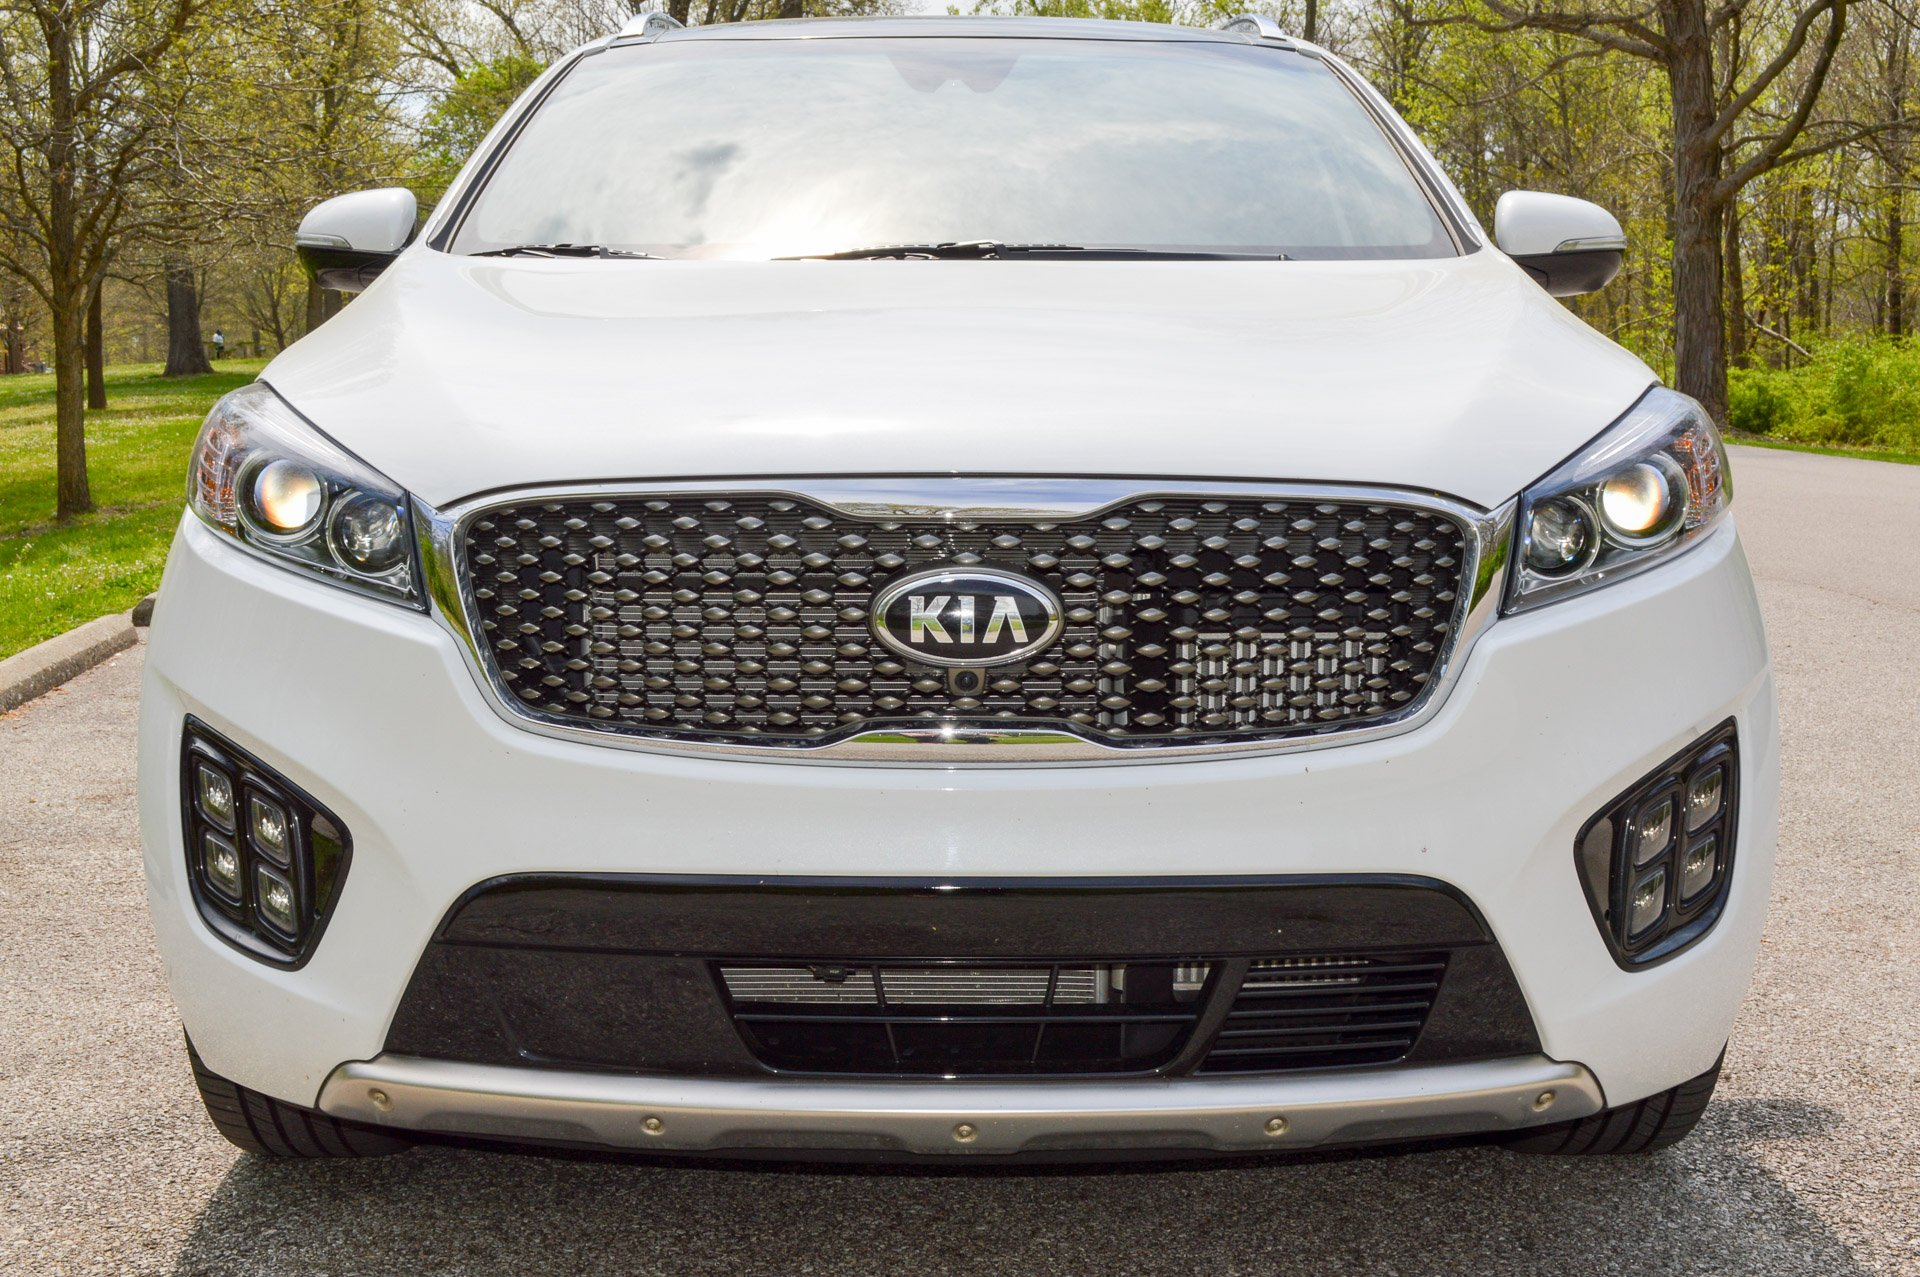 Review 2016 kia sorento sx v6 95 octane for Garage kia 95